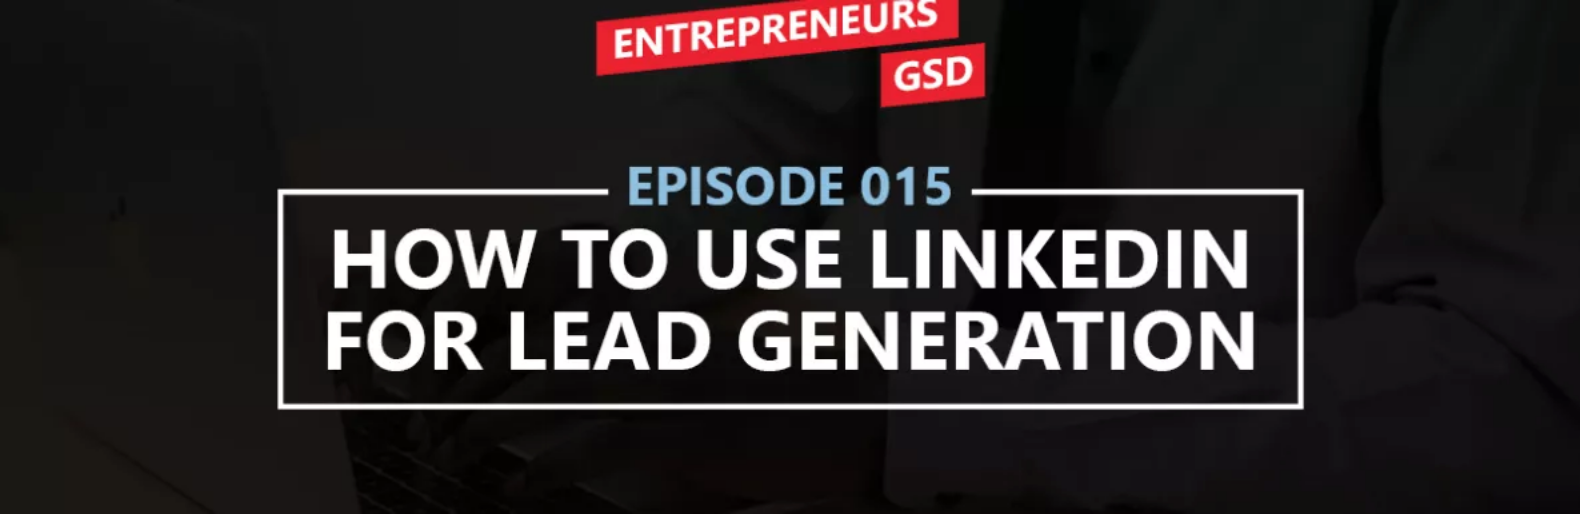 How to use LinkedIn for Lead generation, a podcast